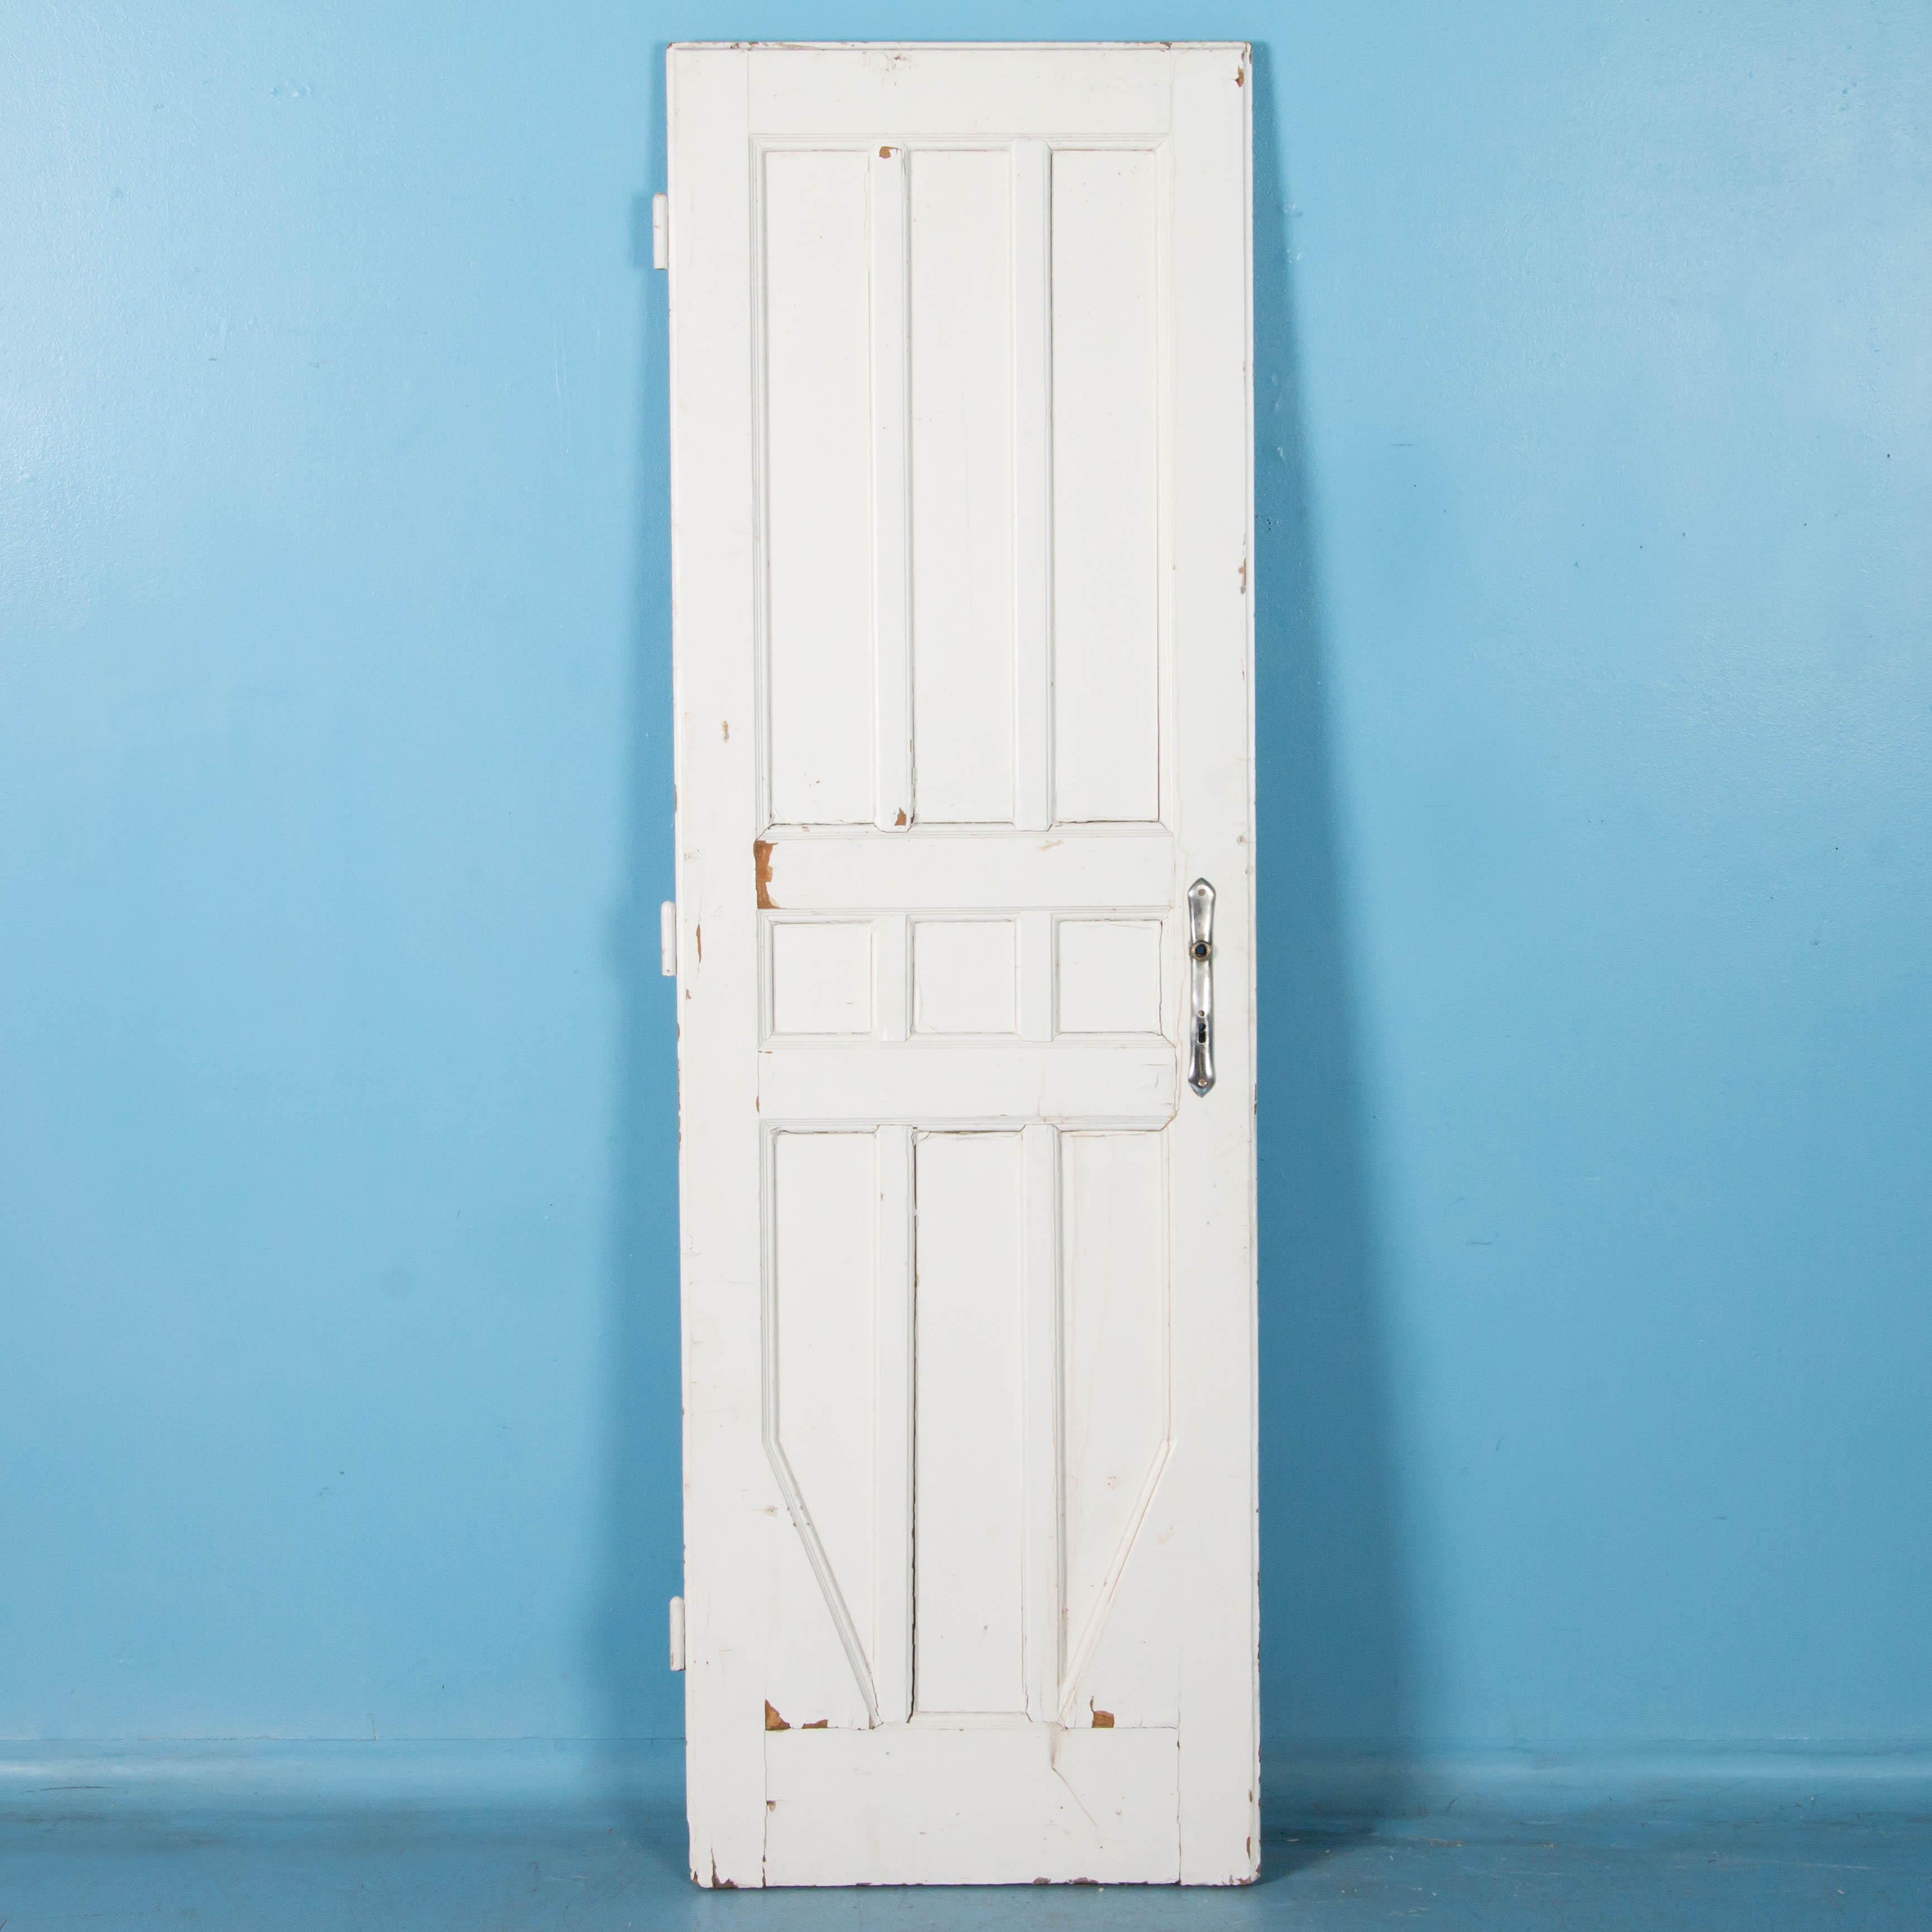 Early 20th Century Antique Interior Door From Sweden Painted White